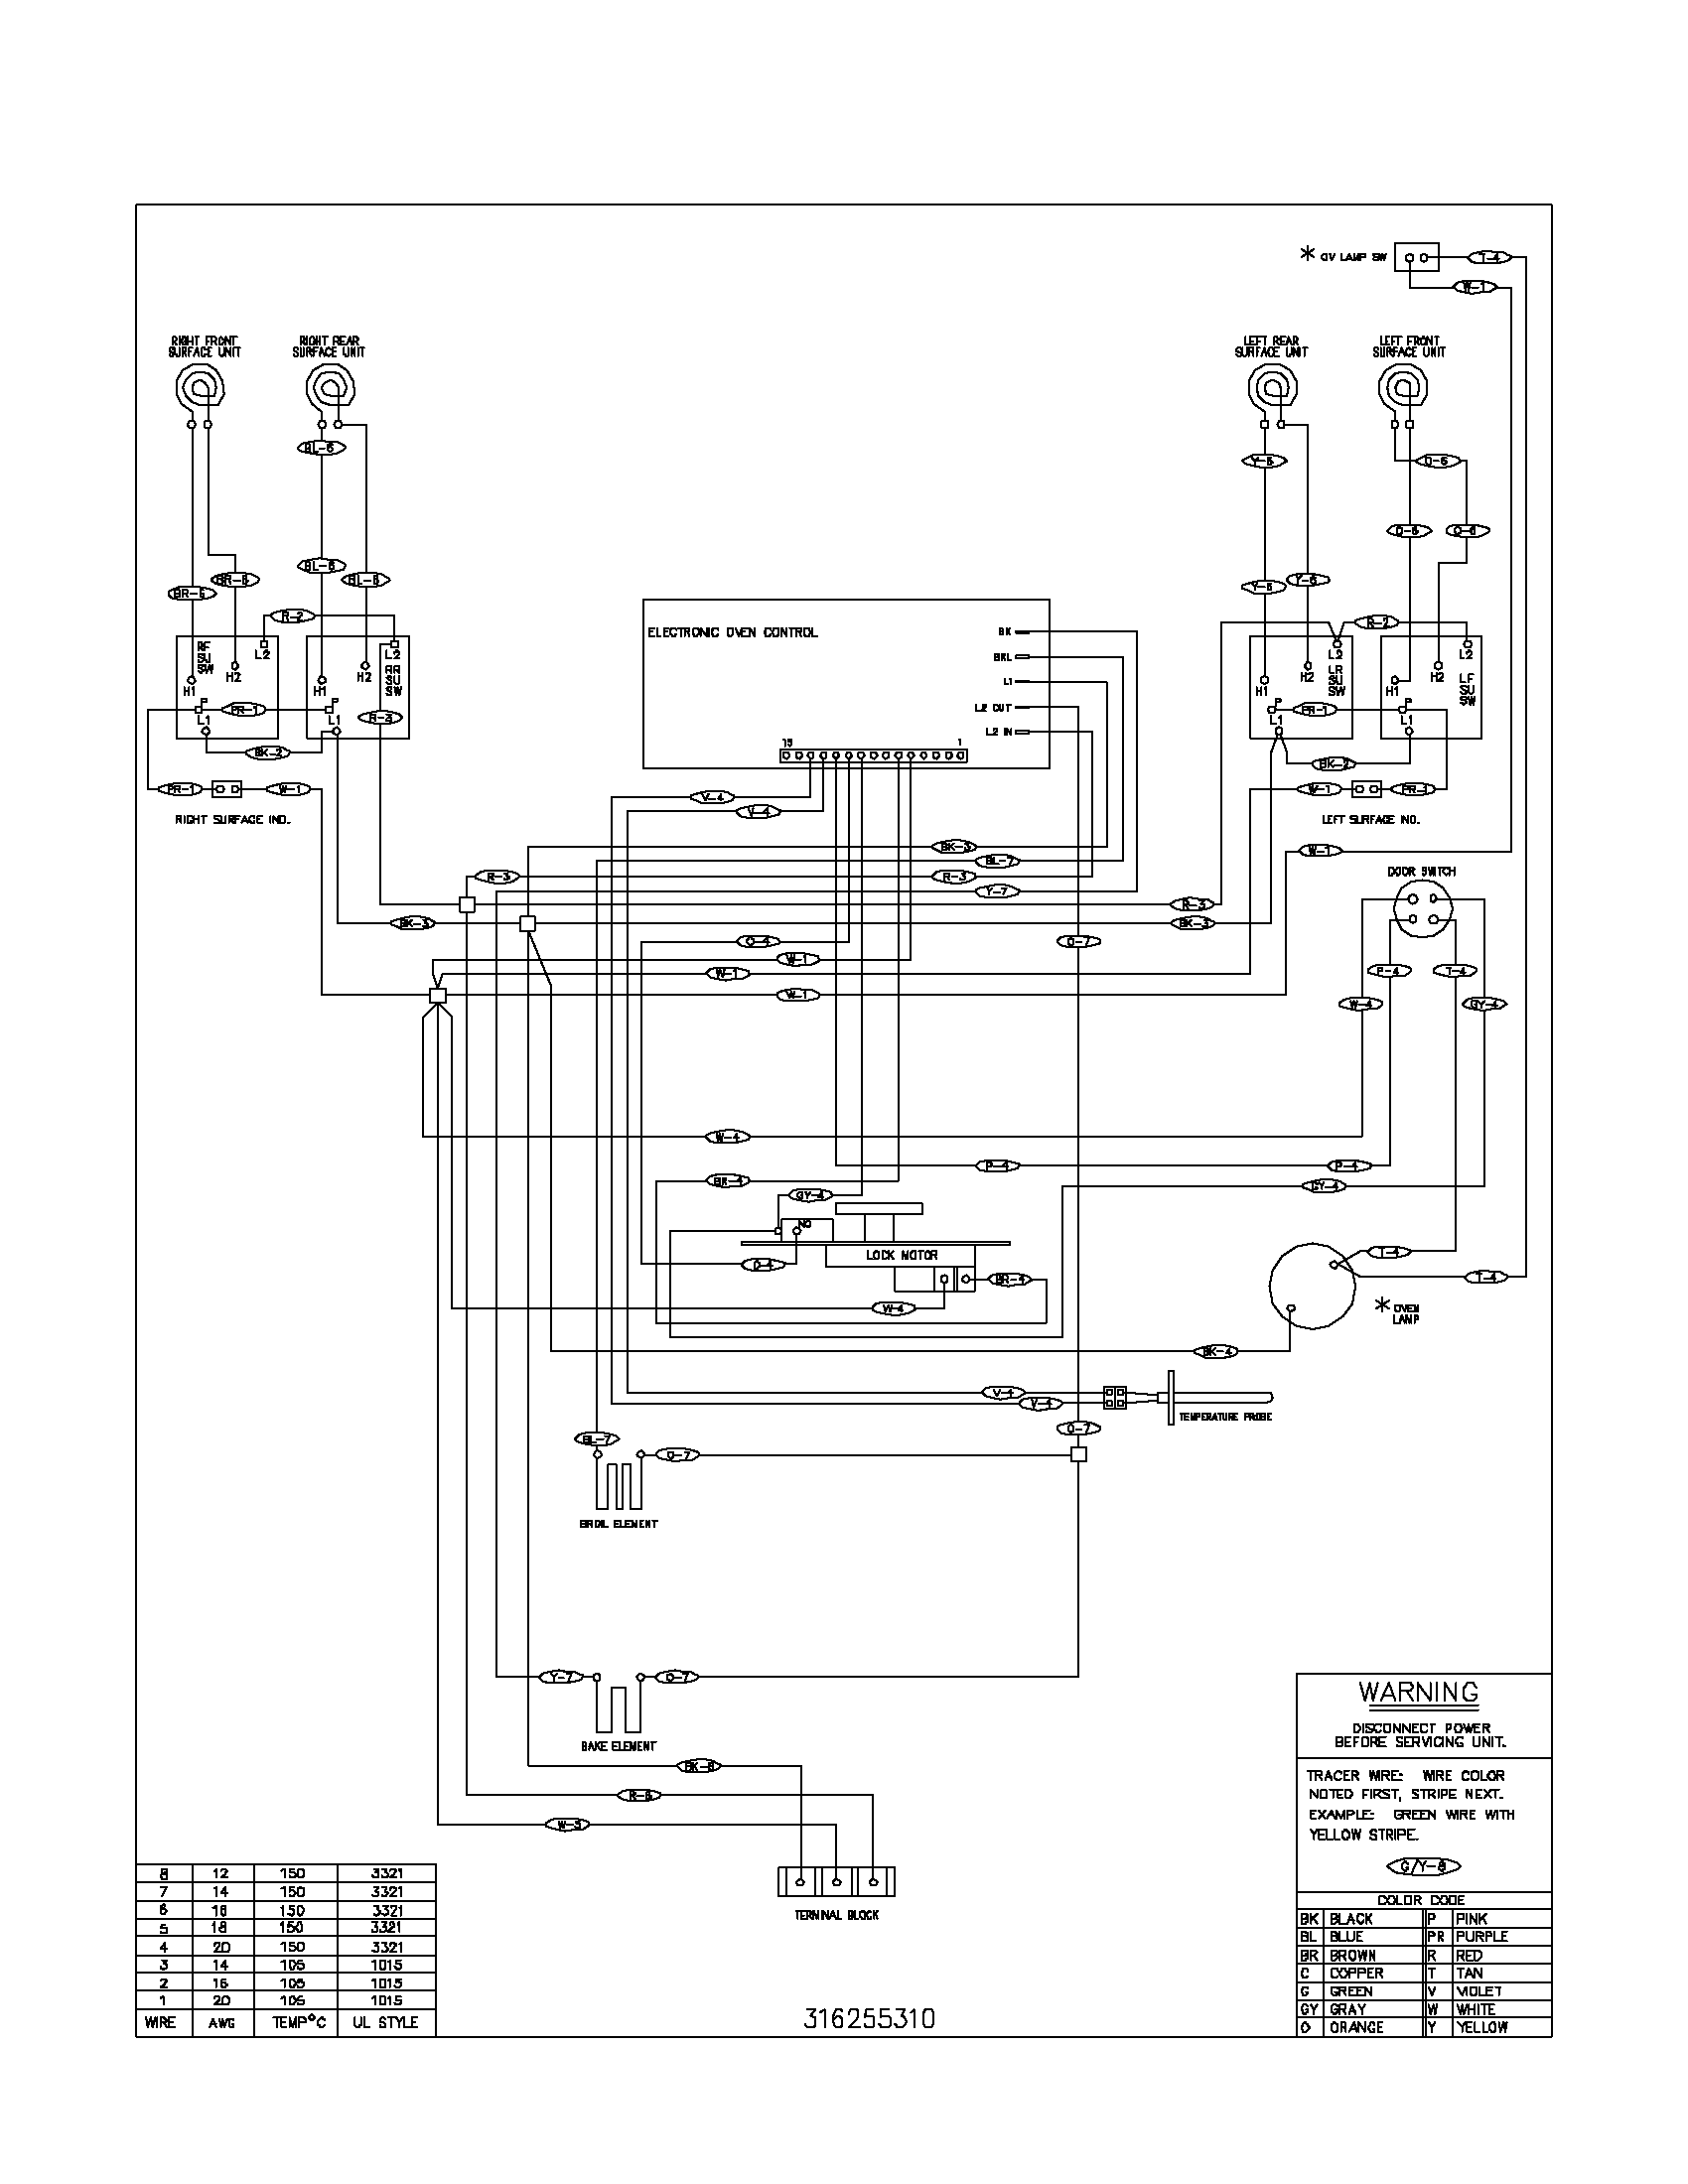 rice trailer wiring diagram mafelec control box wiring diagram, Wiring diagram